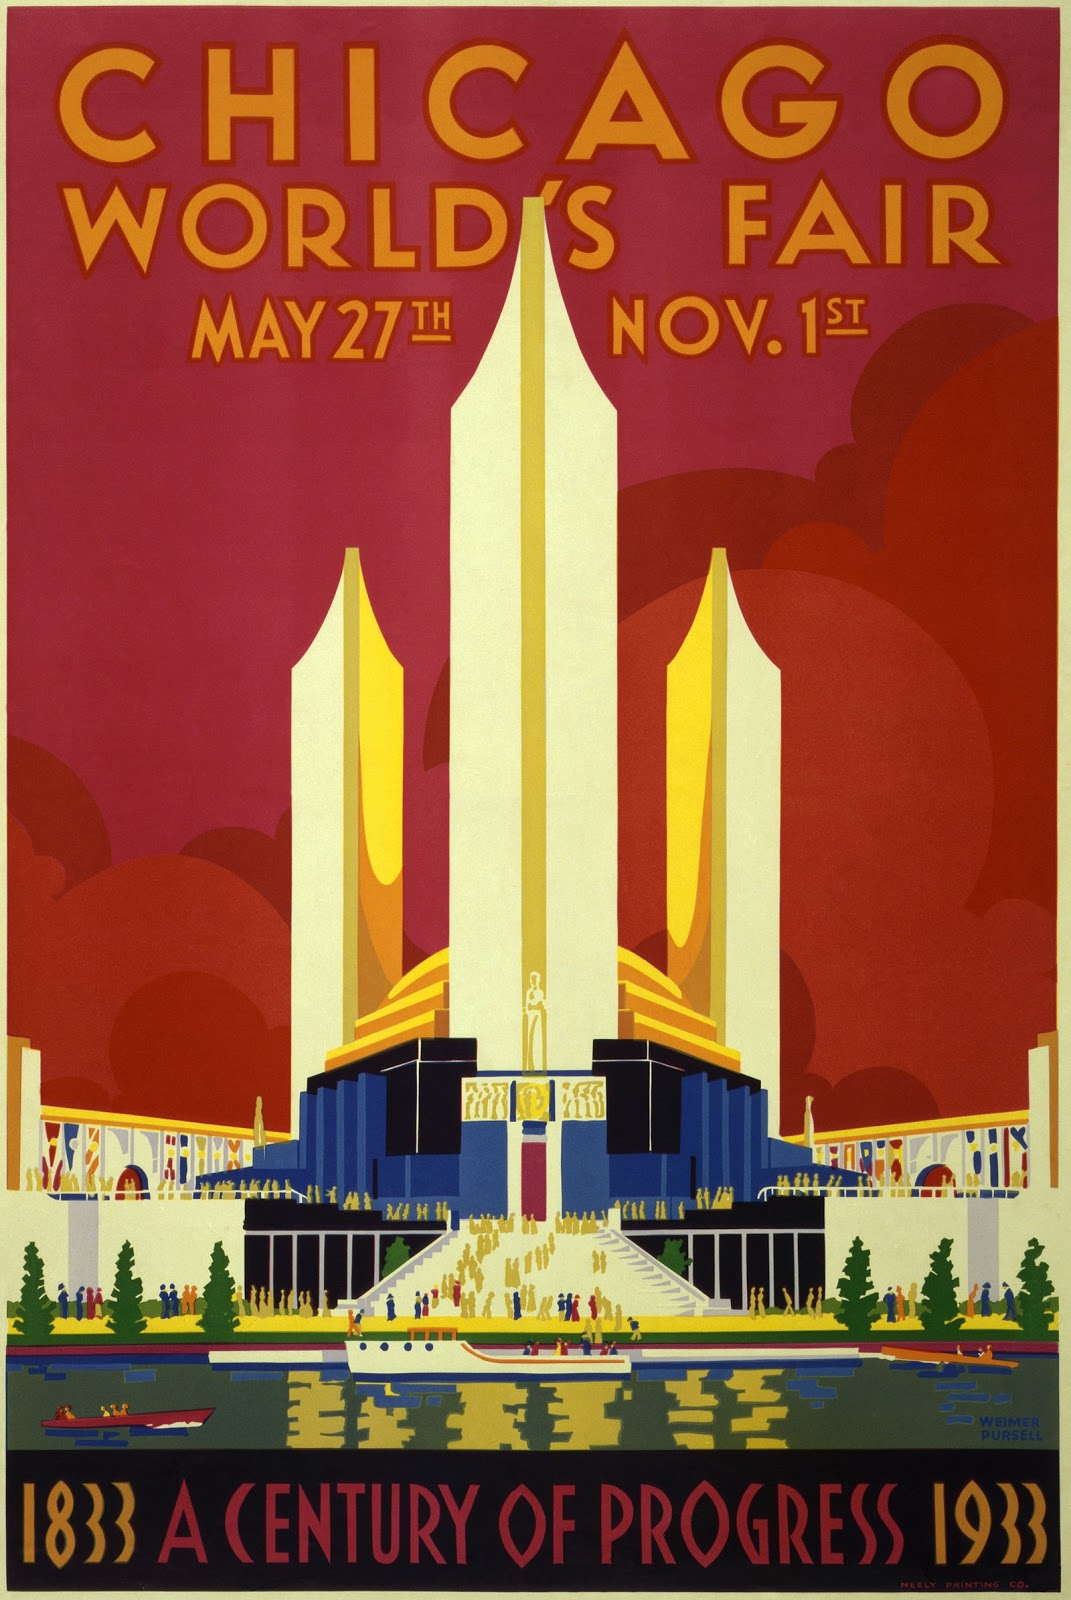 Chicago World's Fair poster by Weimer Pursell (1933)